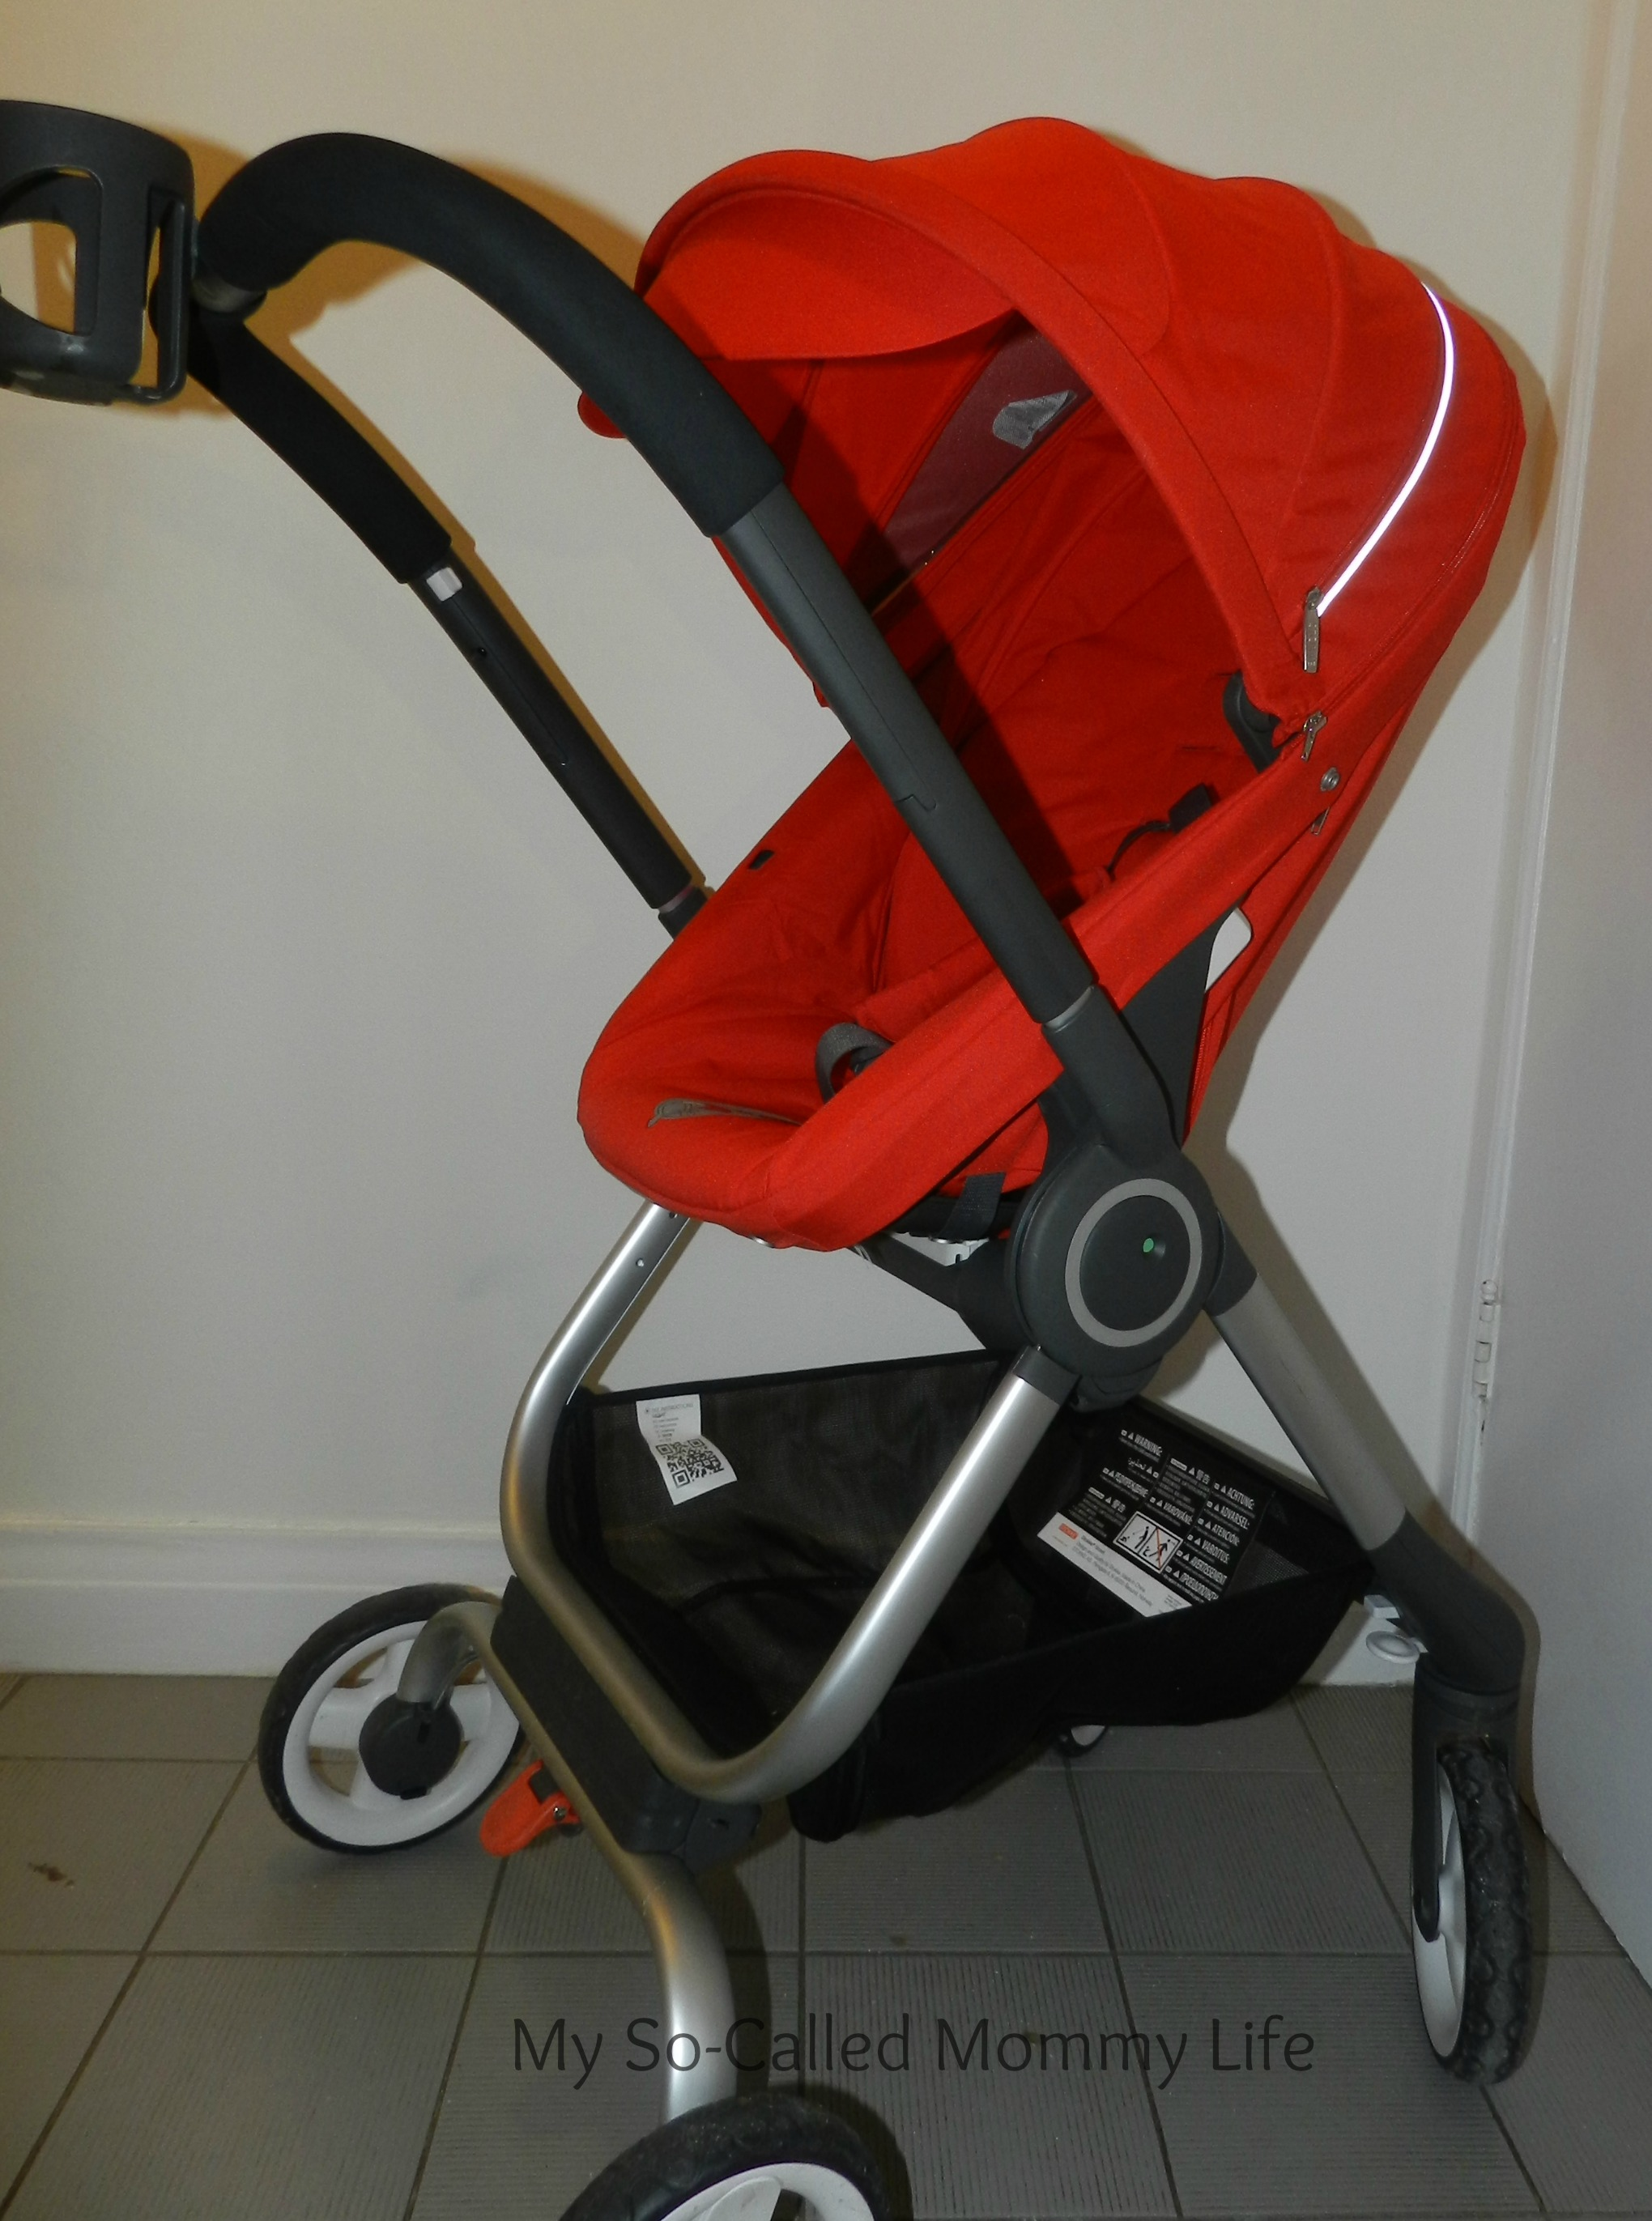 Stokke Maxi Cosi Car Seat Scooting Around With Stokke Scoot Review My So Called